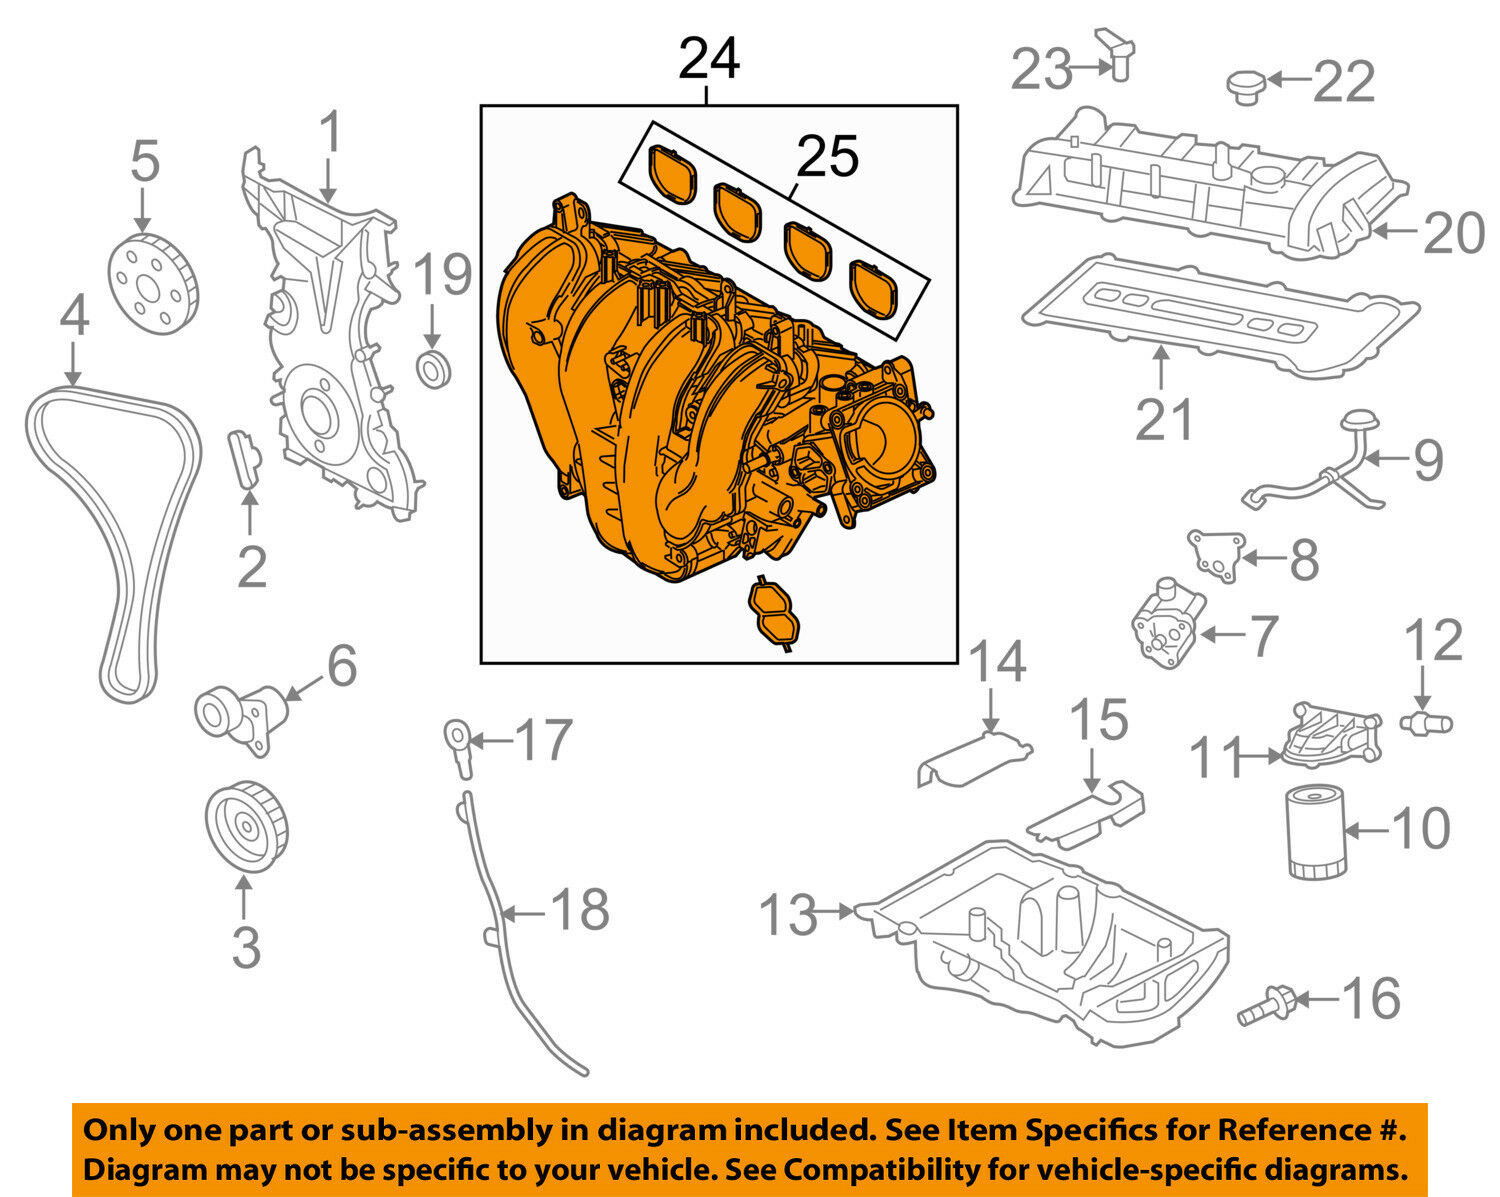 Ford Oem 03 06 Focus Engine Intake Manifold 3s4z9424ah 28925 With Diagram 1 Of 2only Available See More